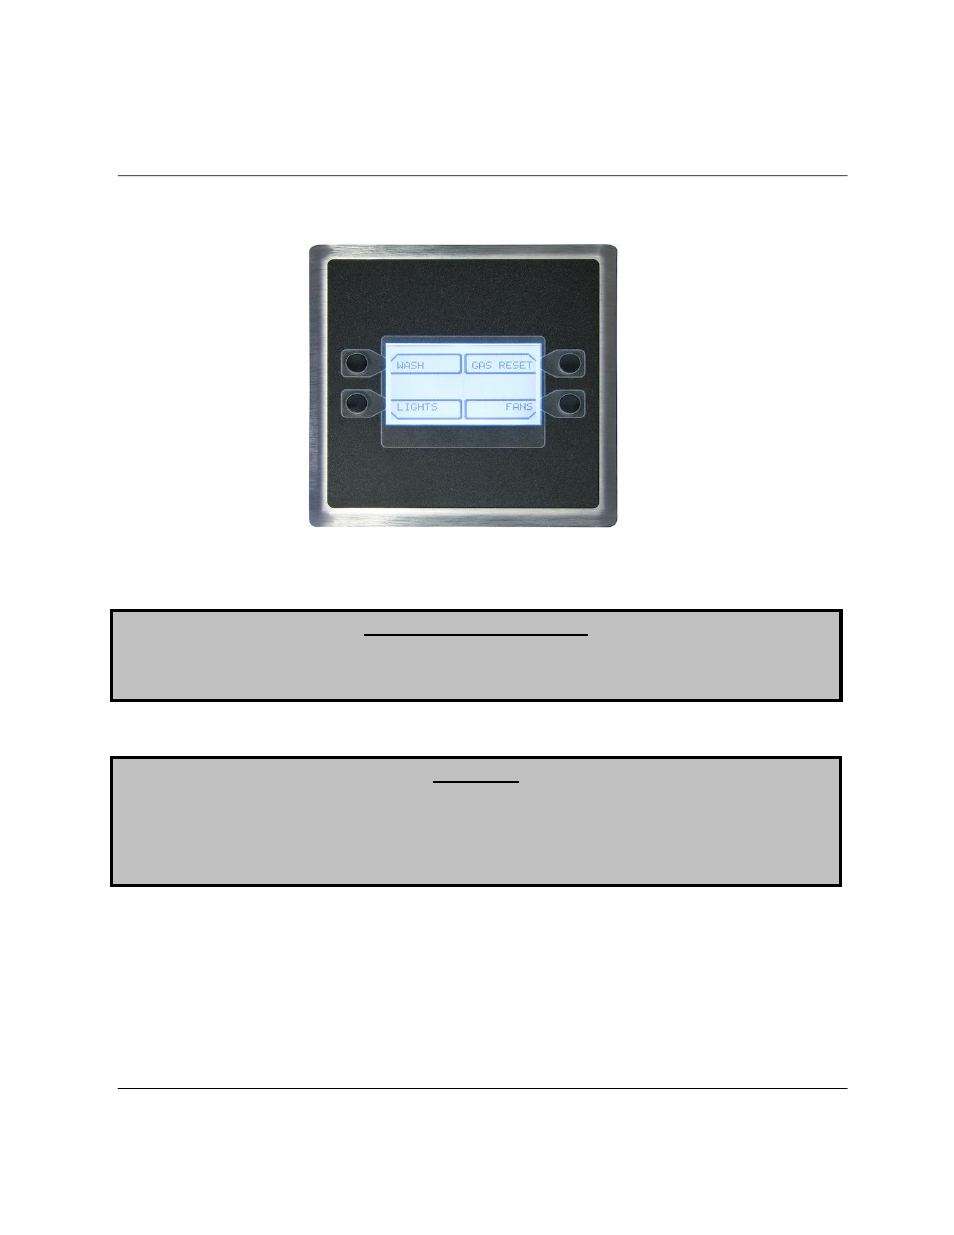 FloAire Electrical Controls User Manual   28 pages